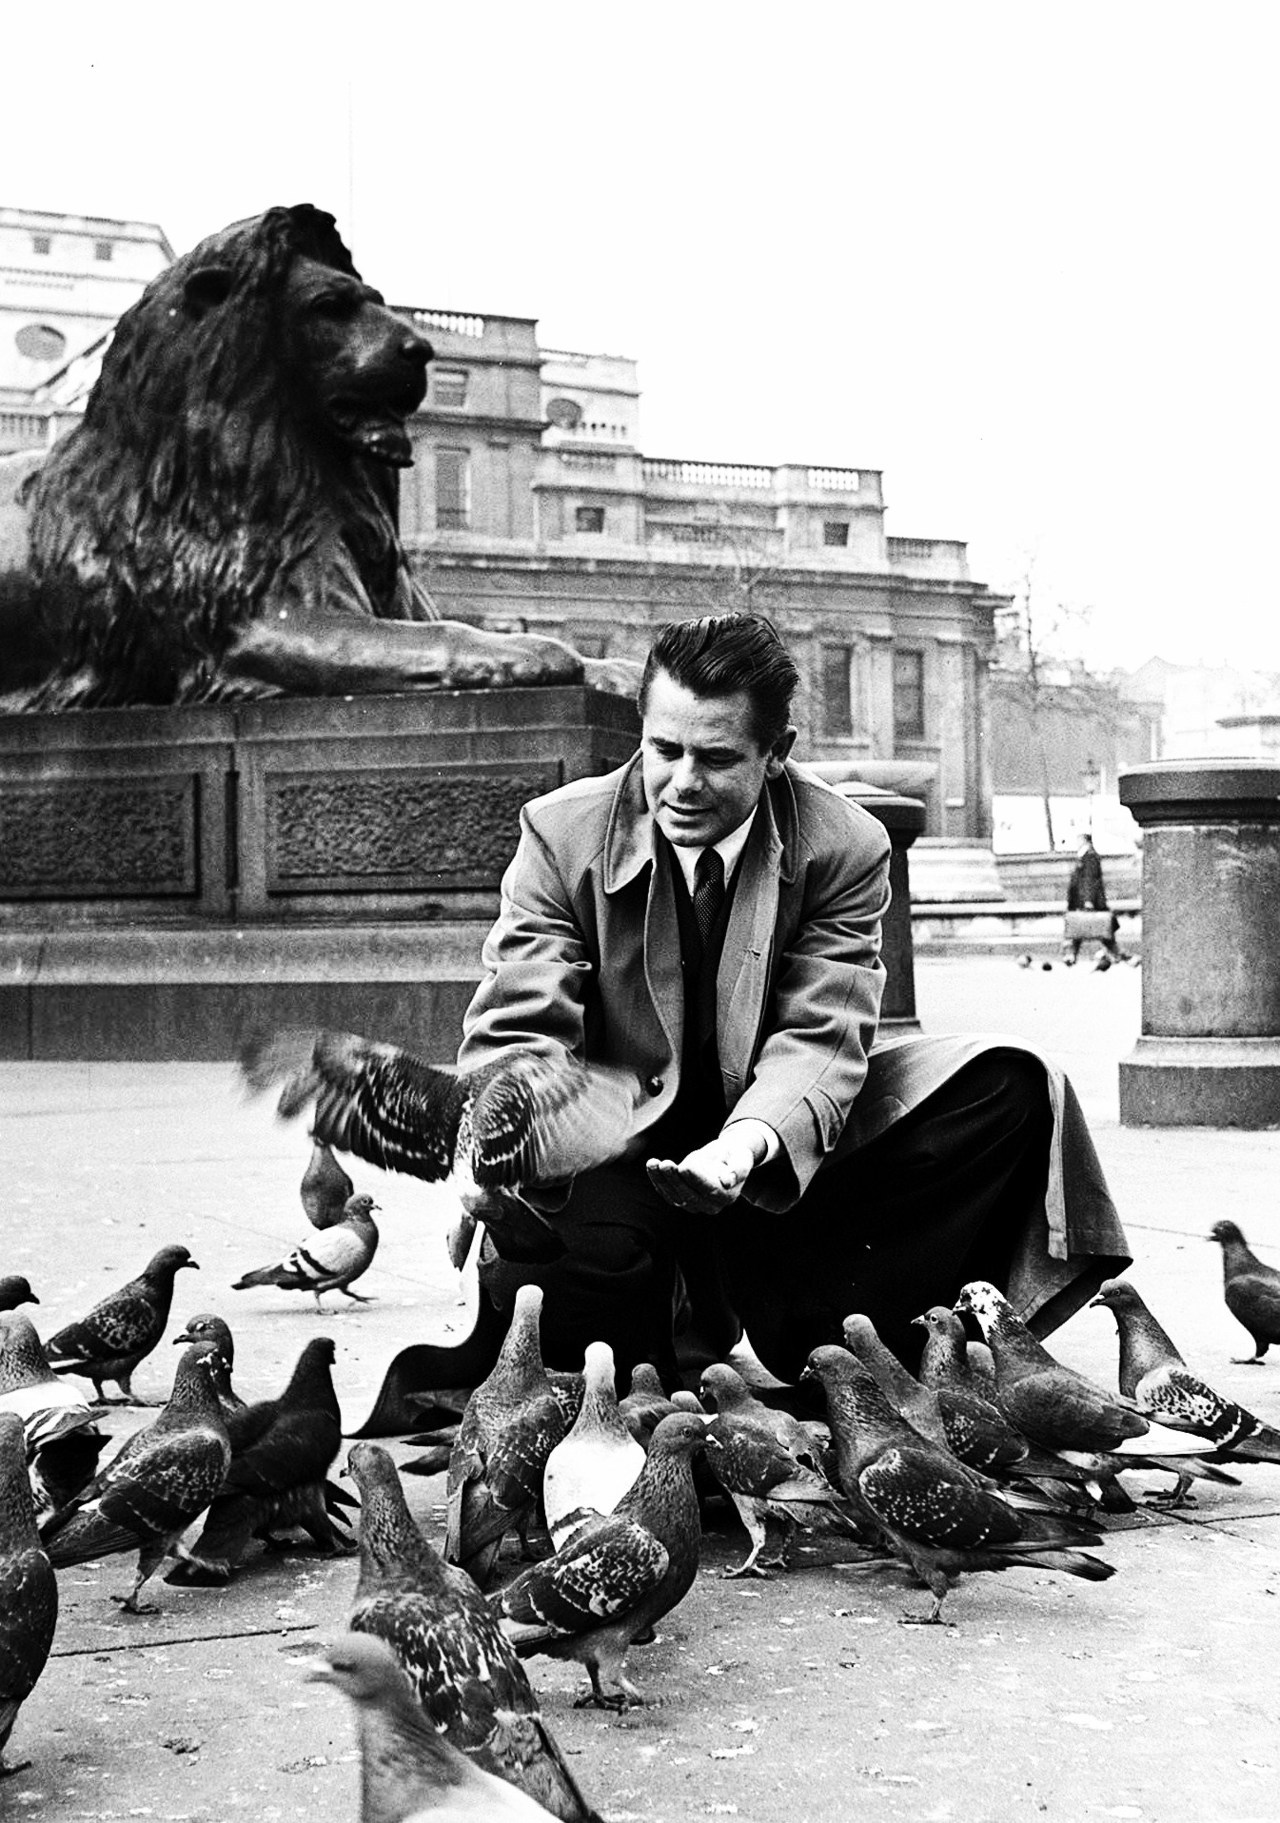 Glenn Ford feeding pigeons in Trafalgar Square in London, England, 1951.